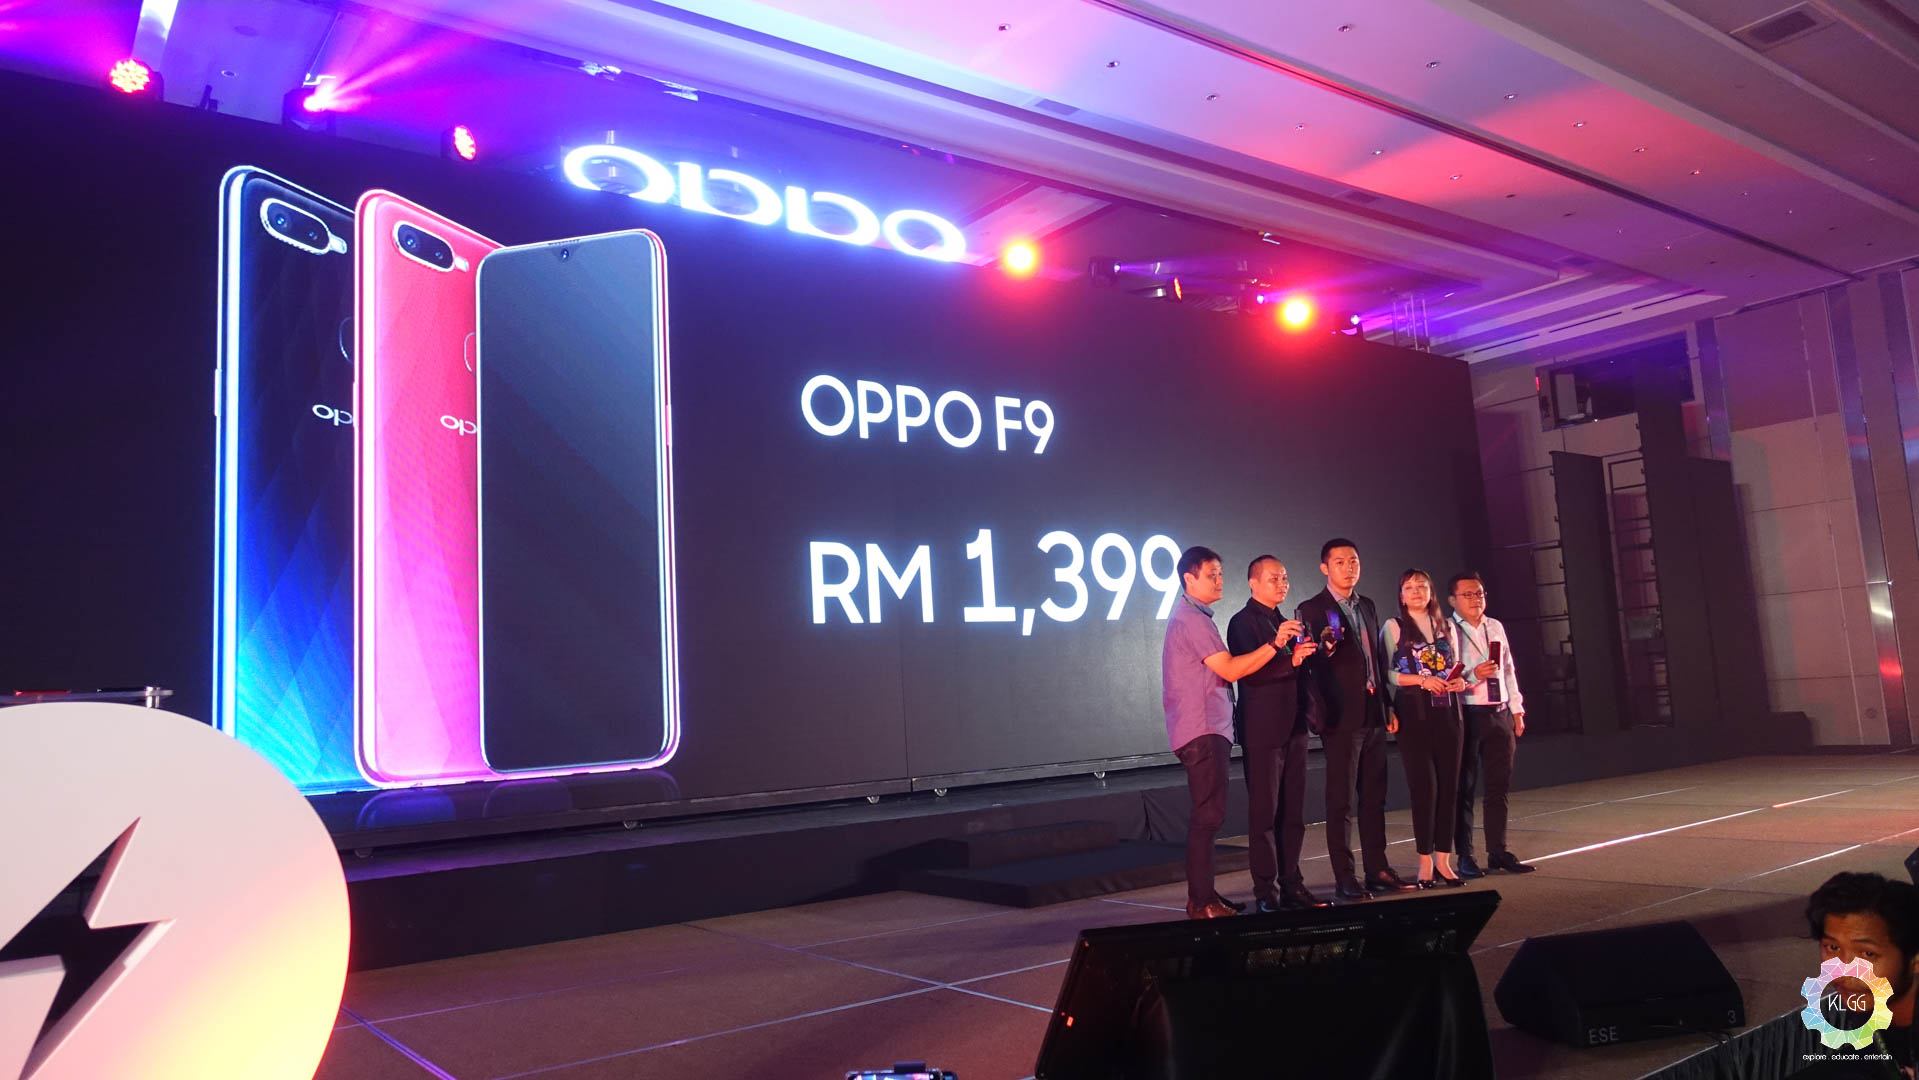 The Oppo F9 will be open for pre orders starting 16 August 2018 to 29 August 2018 on Oppo s ficial Concept Stores and authorised dealers or from their